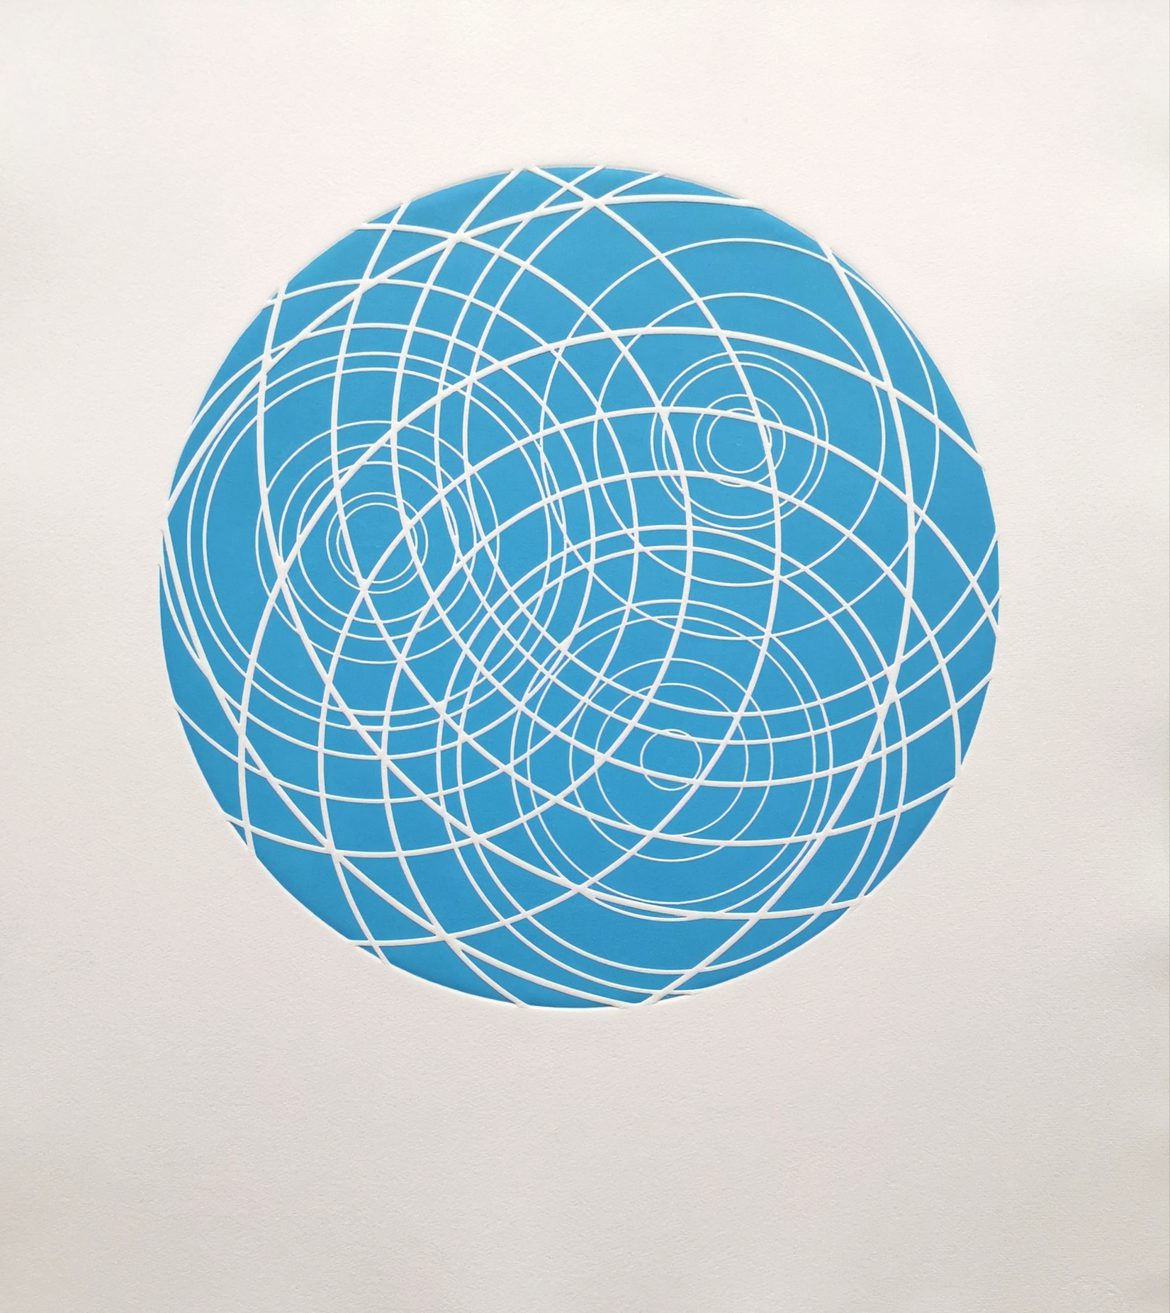 Ripples (Sky Blue), woodblock print, 300gsm hanhemuhle deckled edge etching paper, edition of 5, 61cm x 52cm